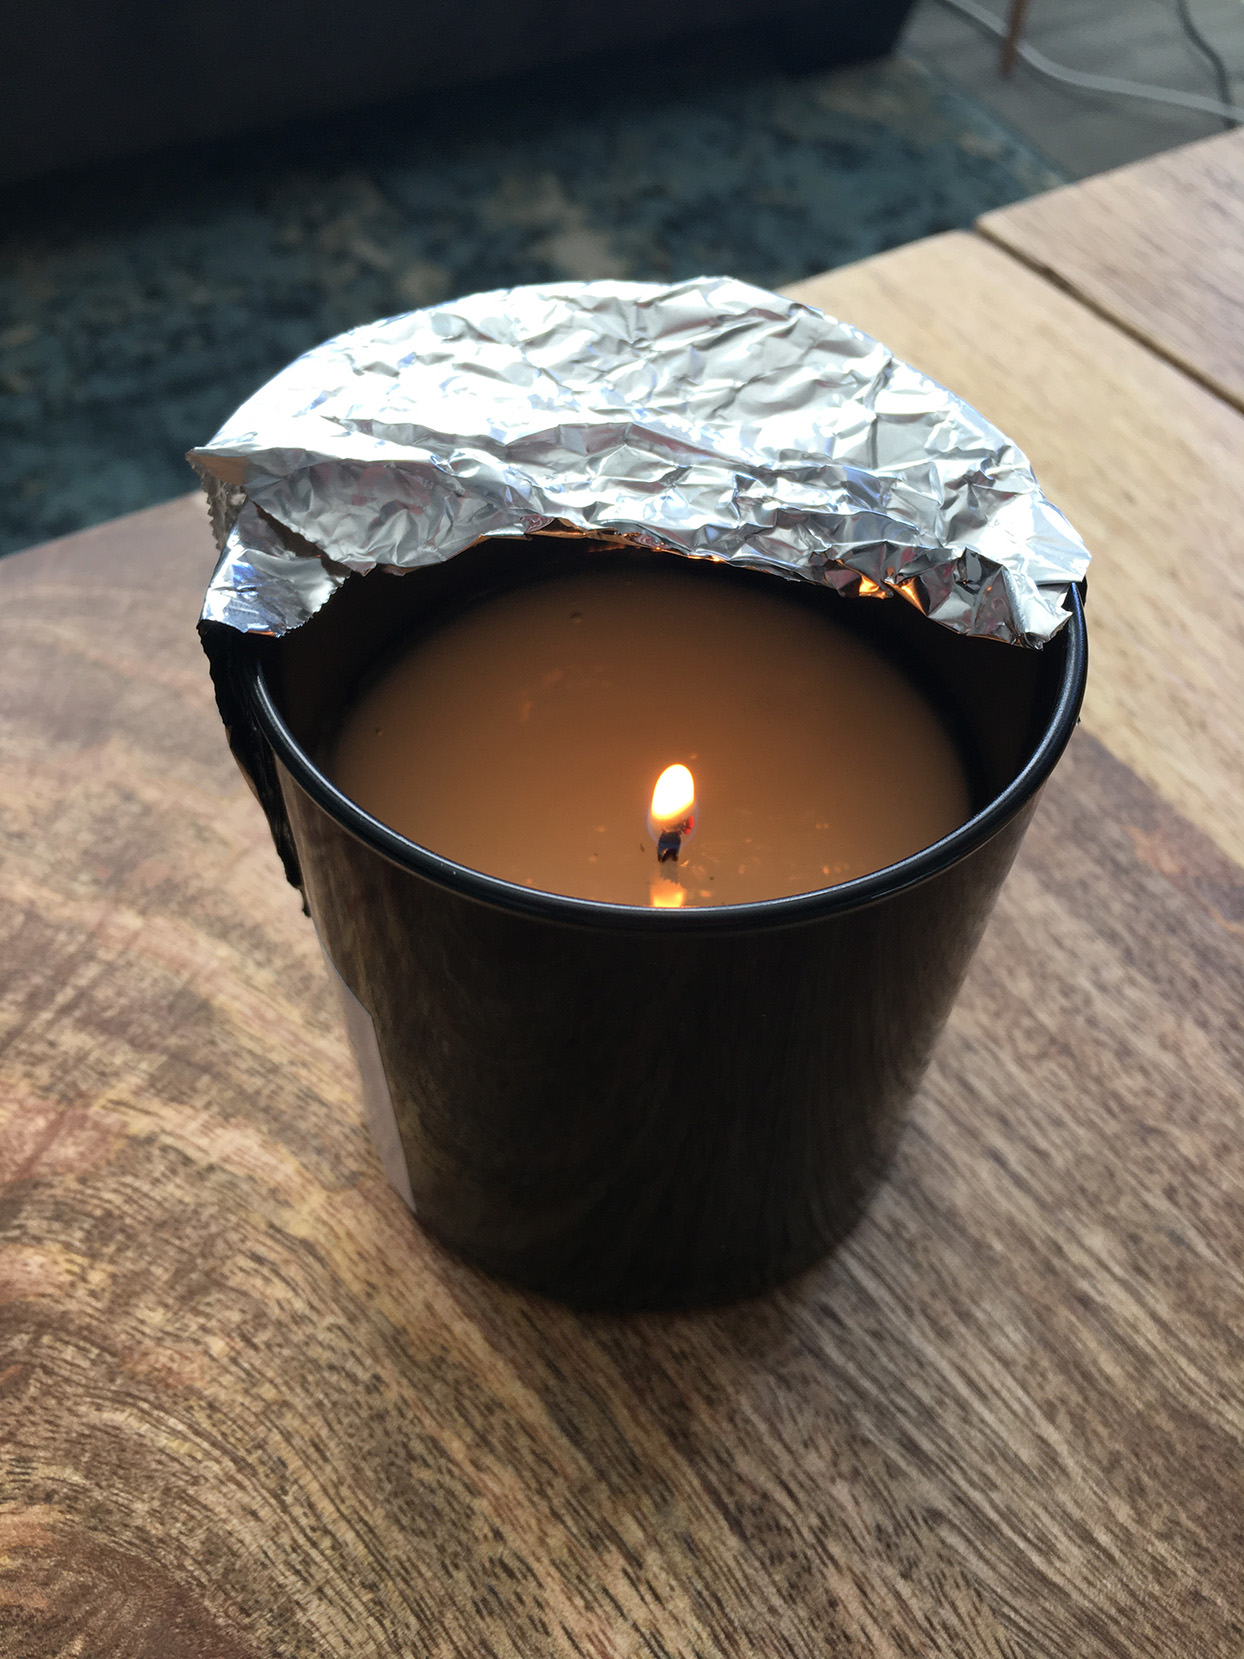 lit candle with foil over edge